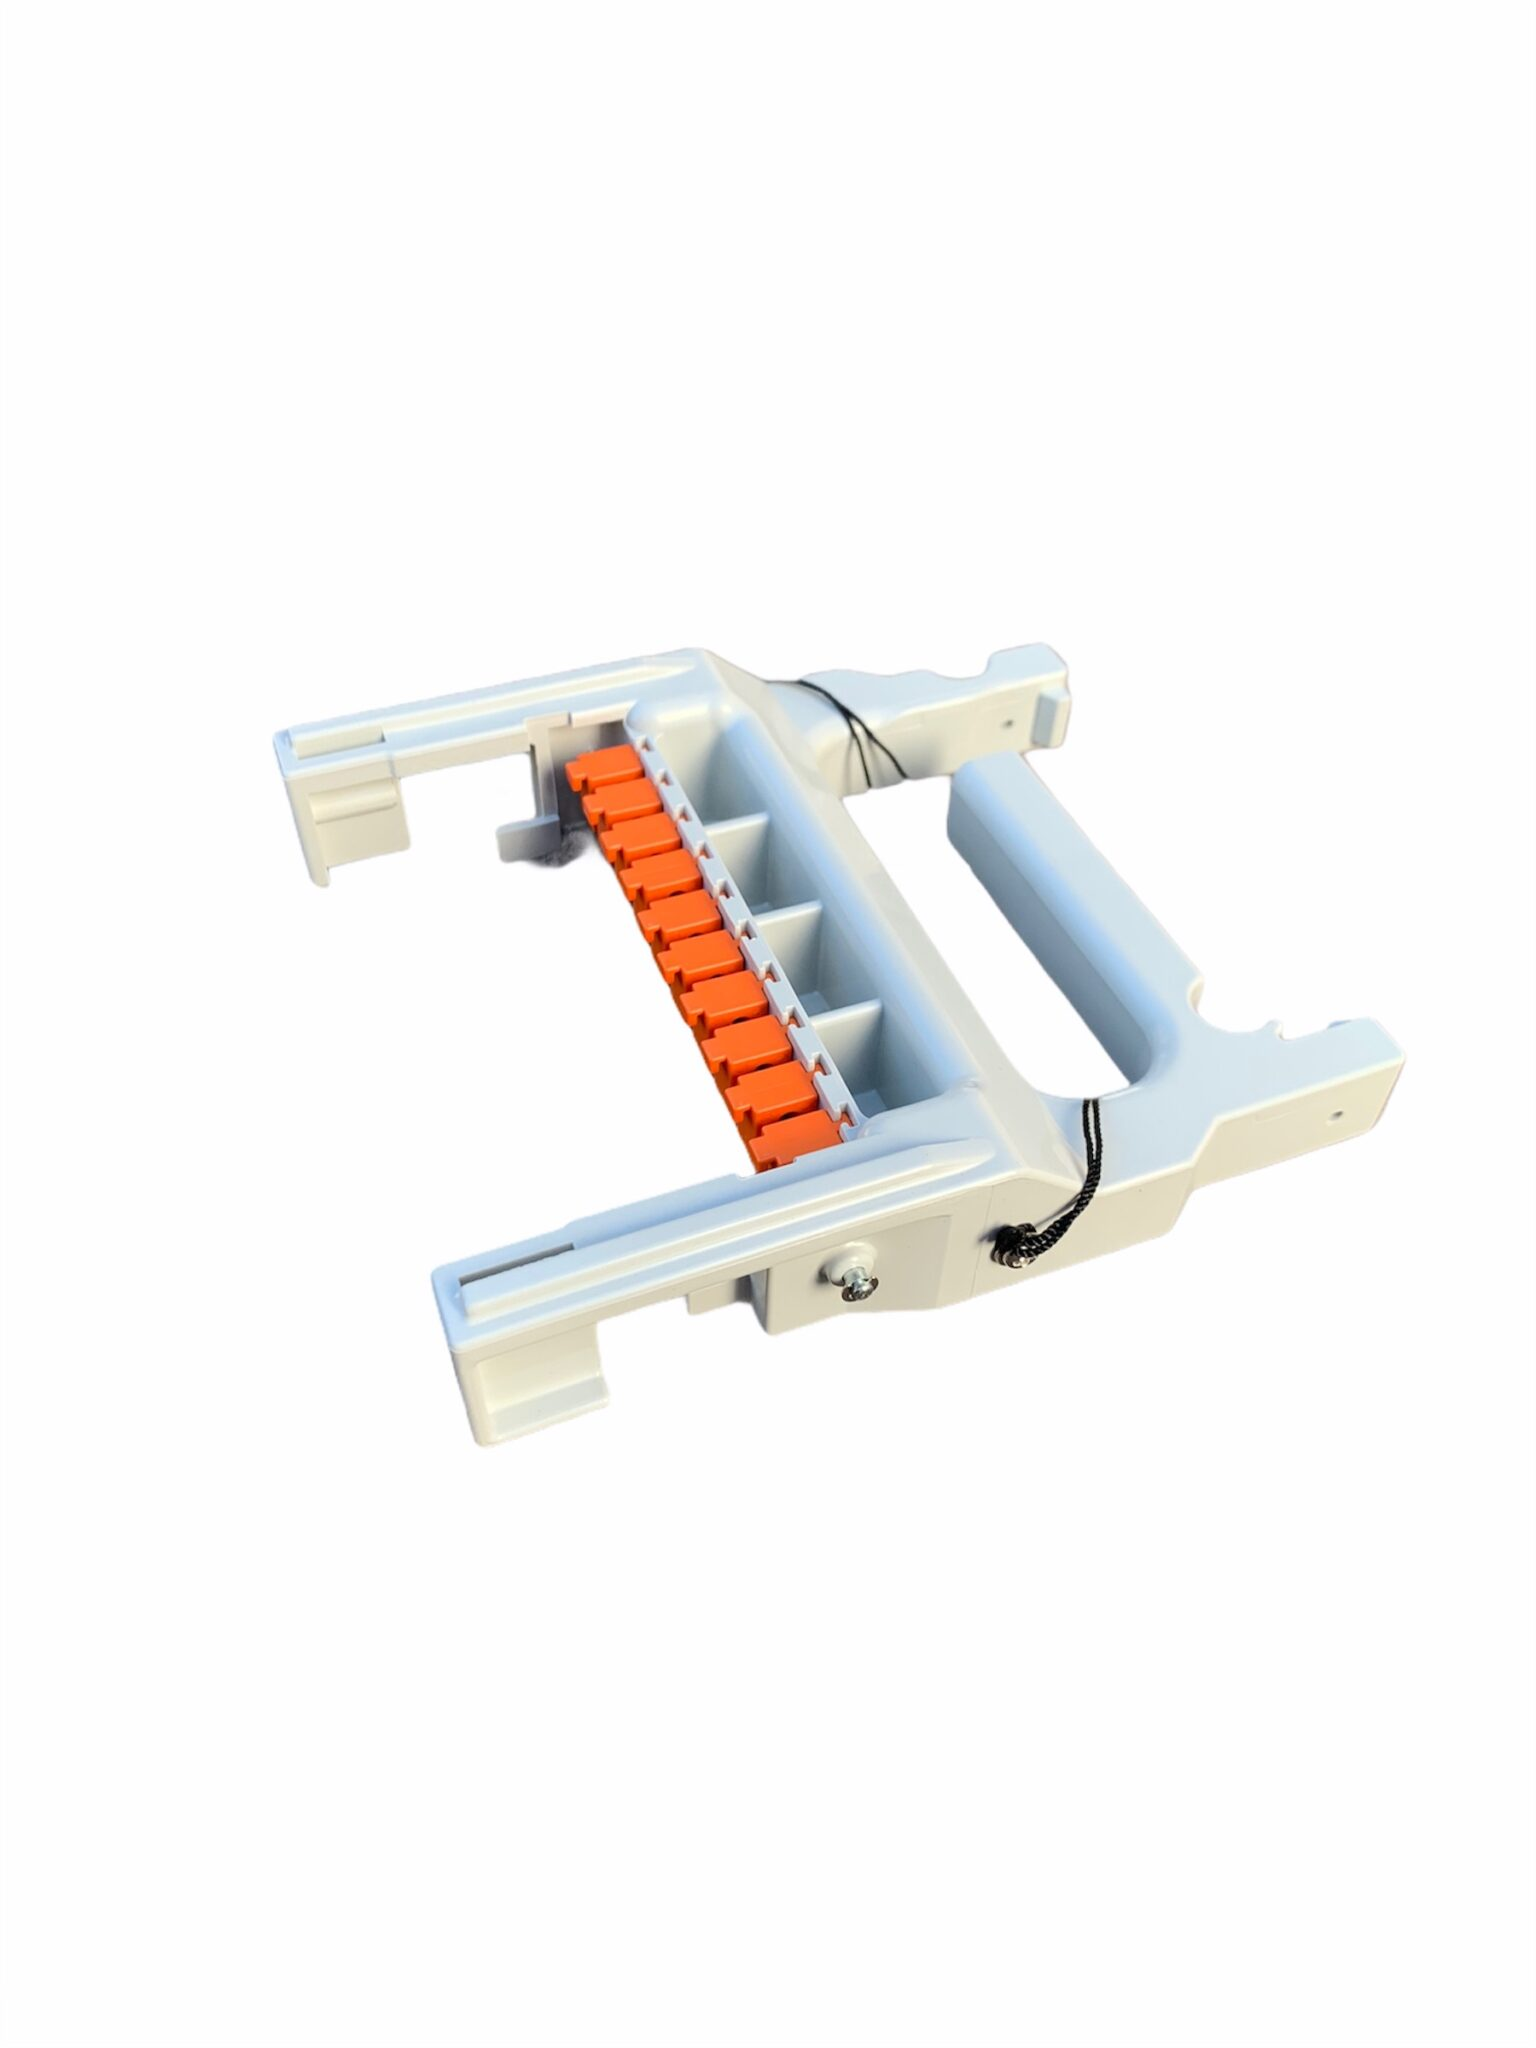 Outrigger Toolless